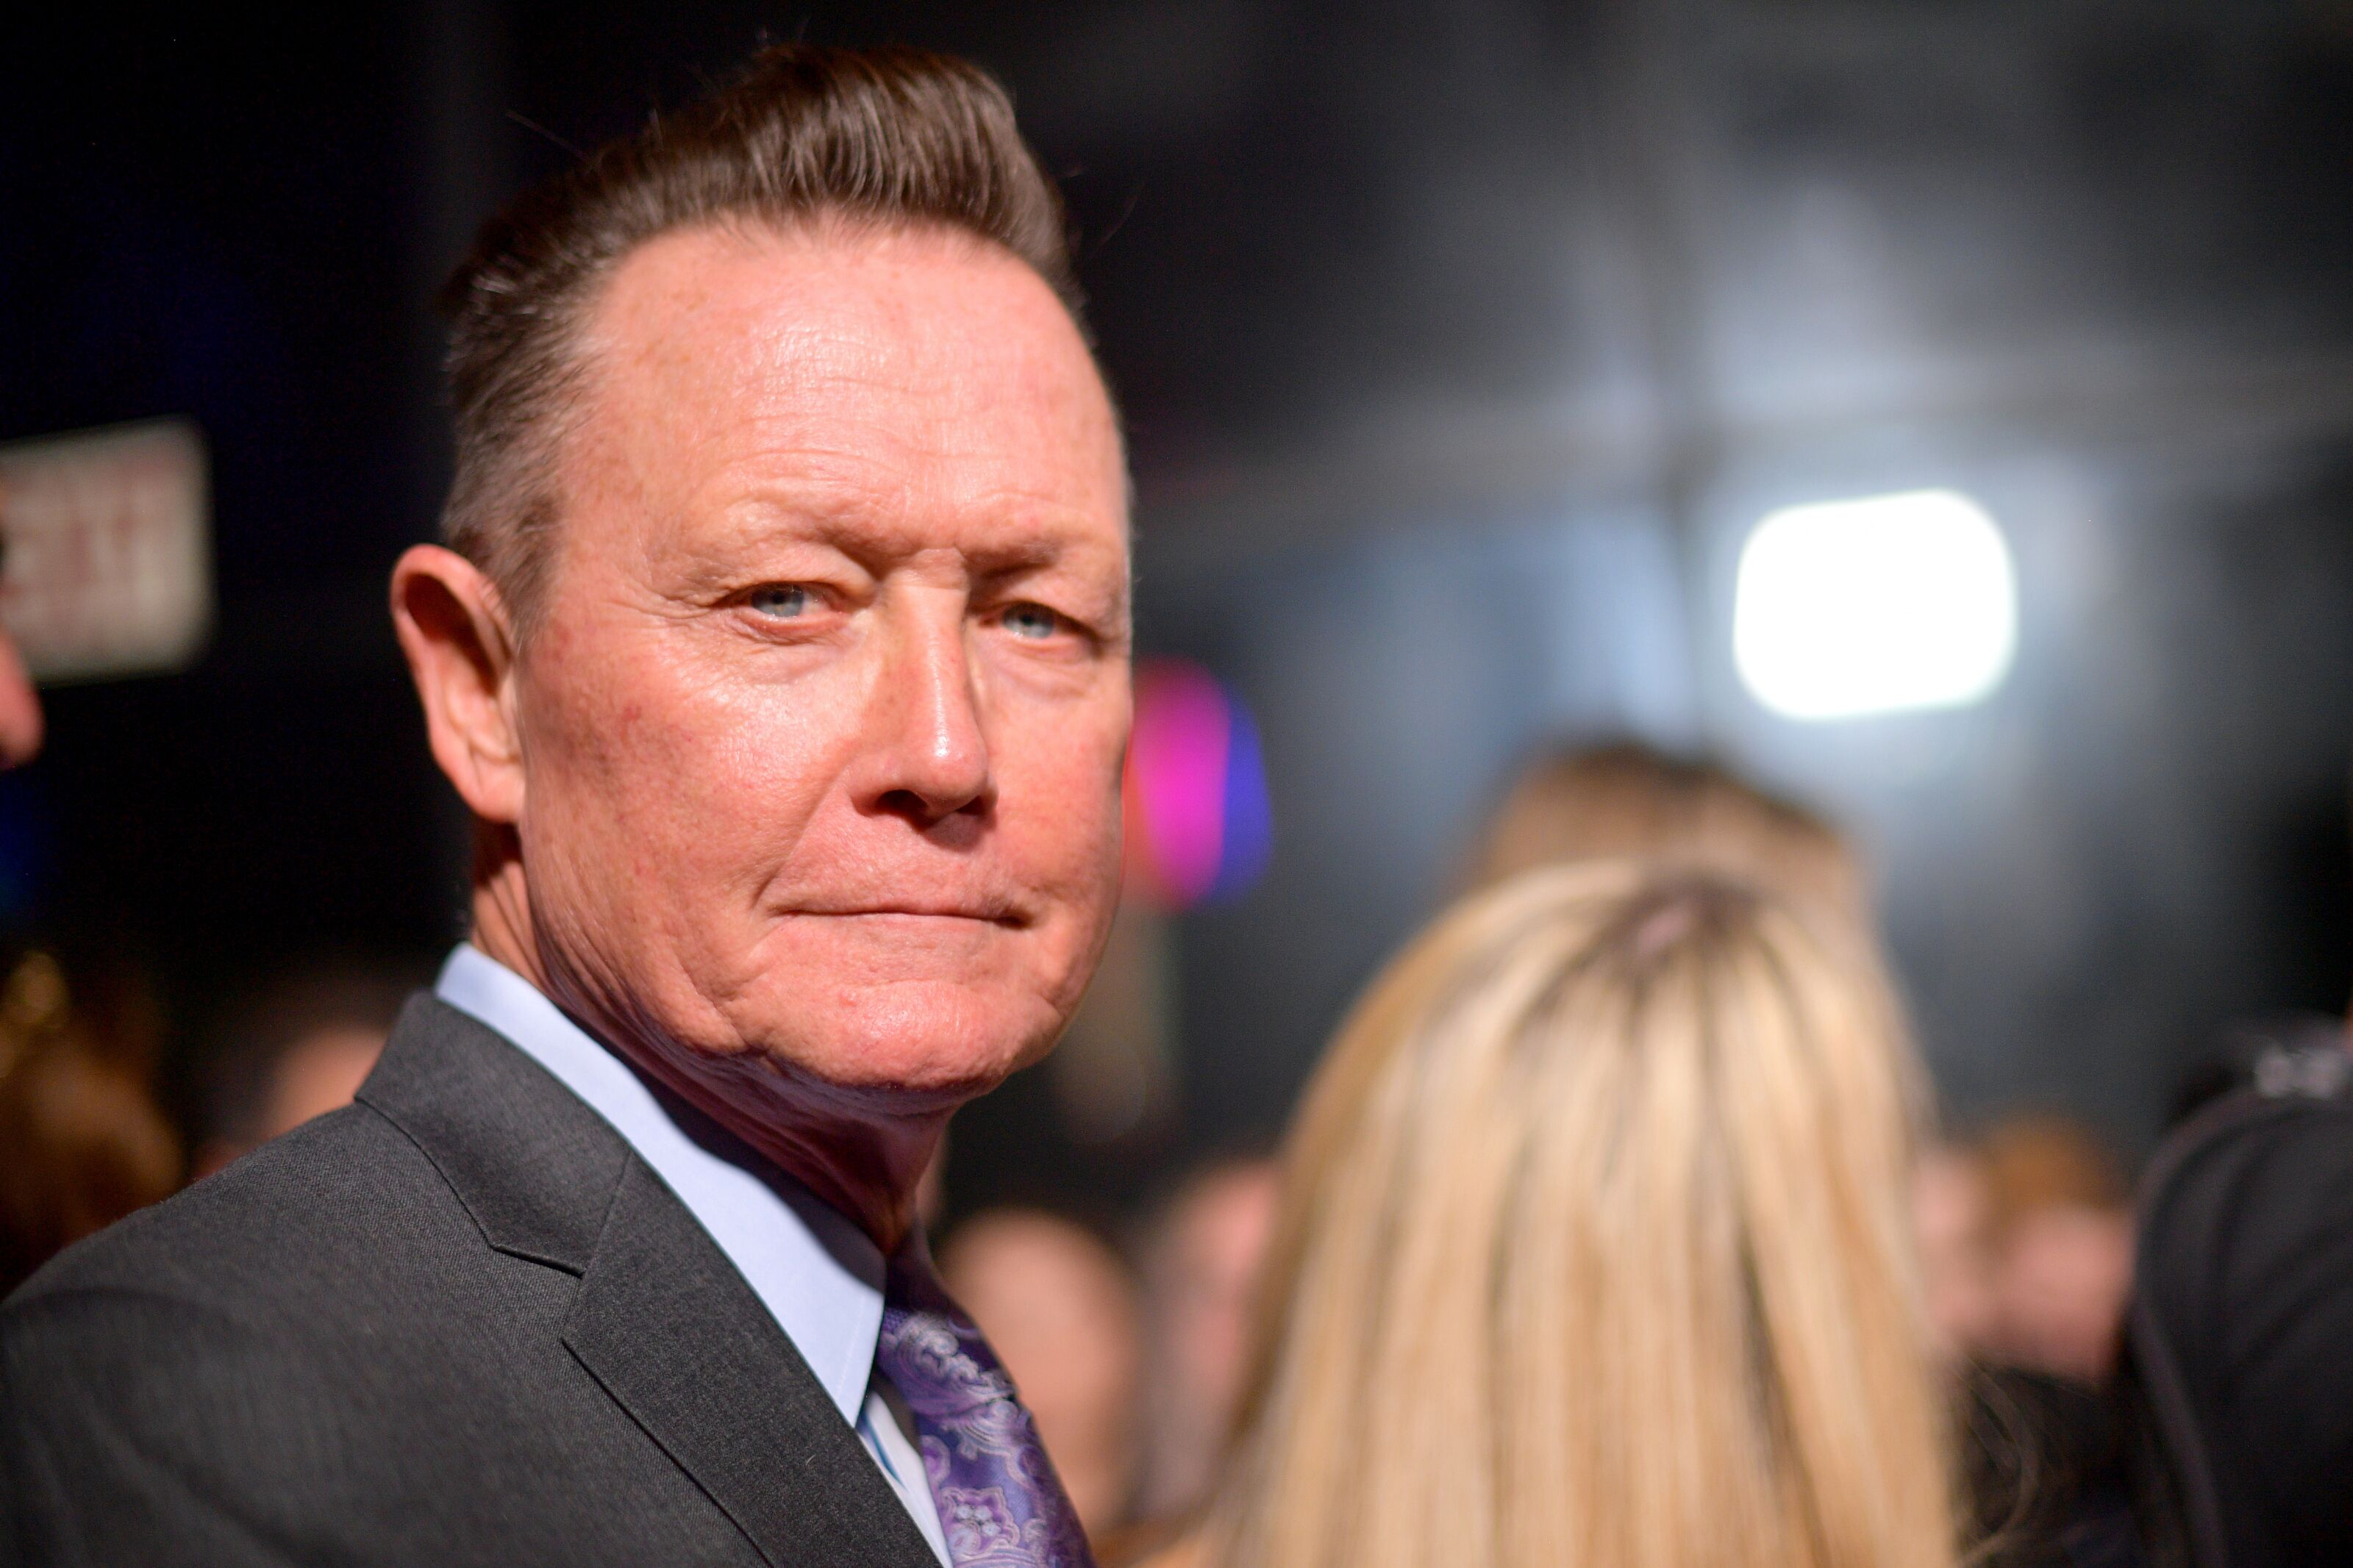 Robert Patrick will always be the scariest Terminator in film history